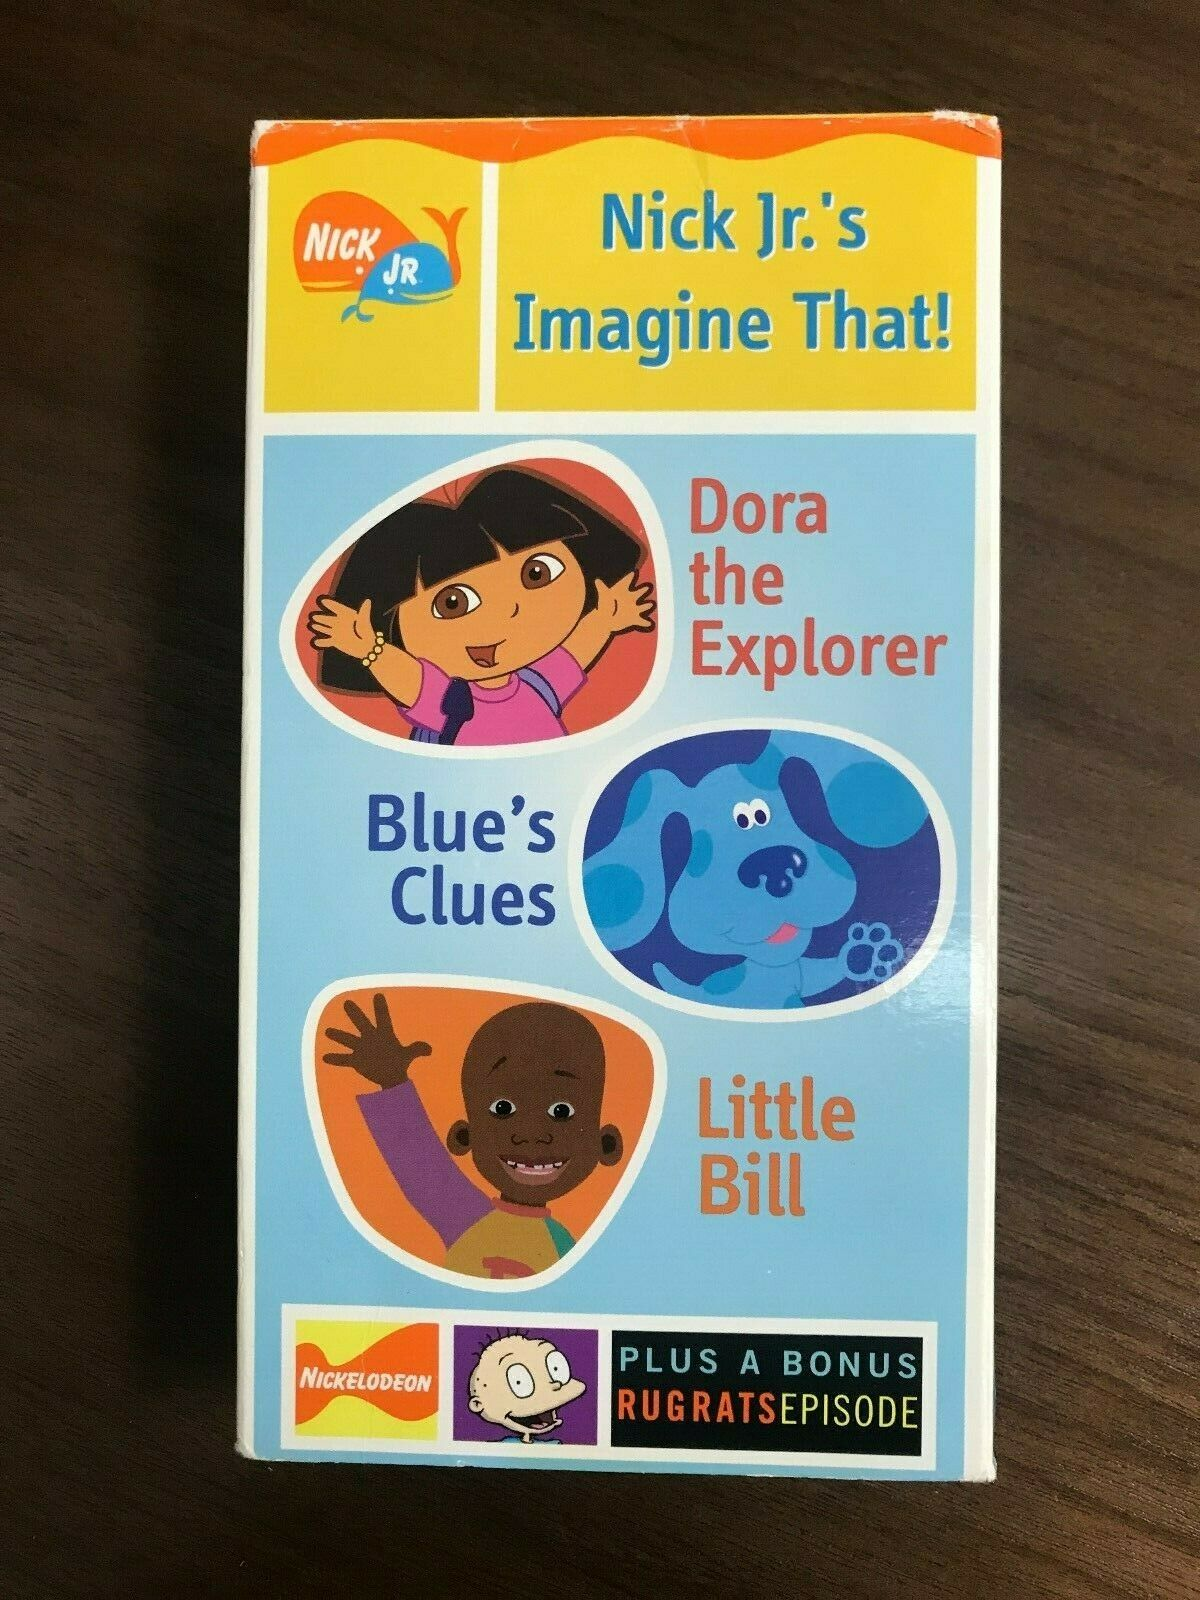 Nick Jr's Imagine That! (2001 VHS)